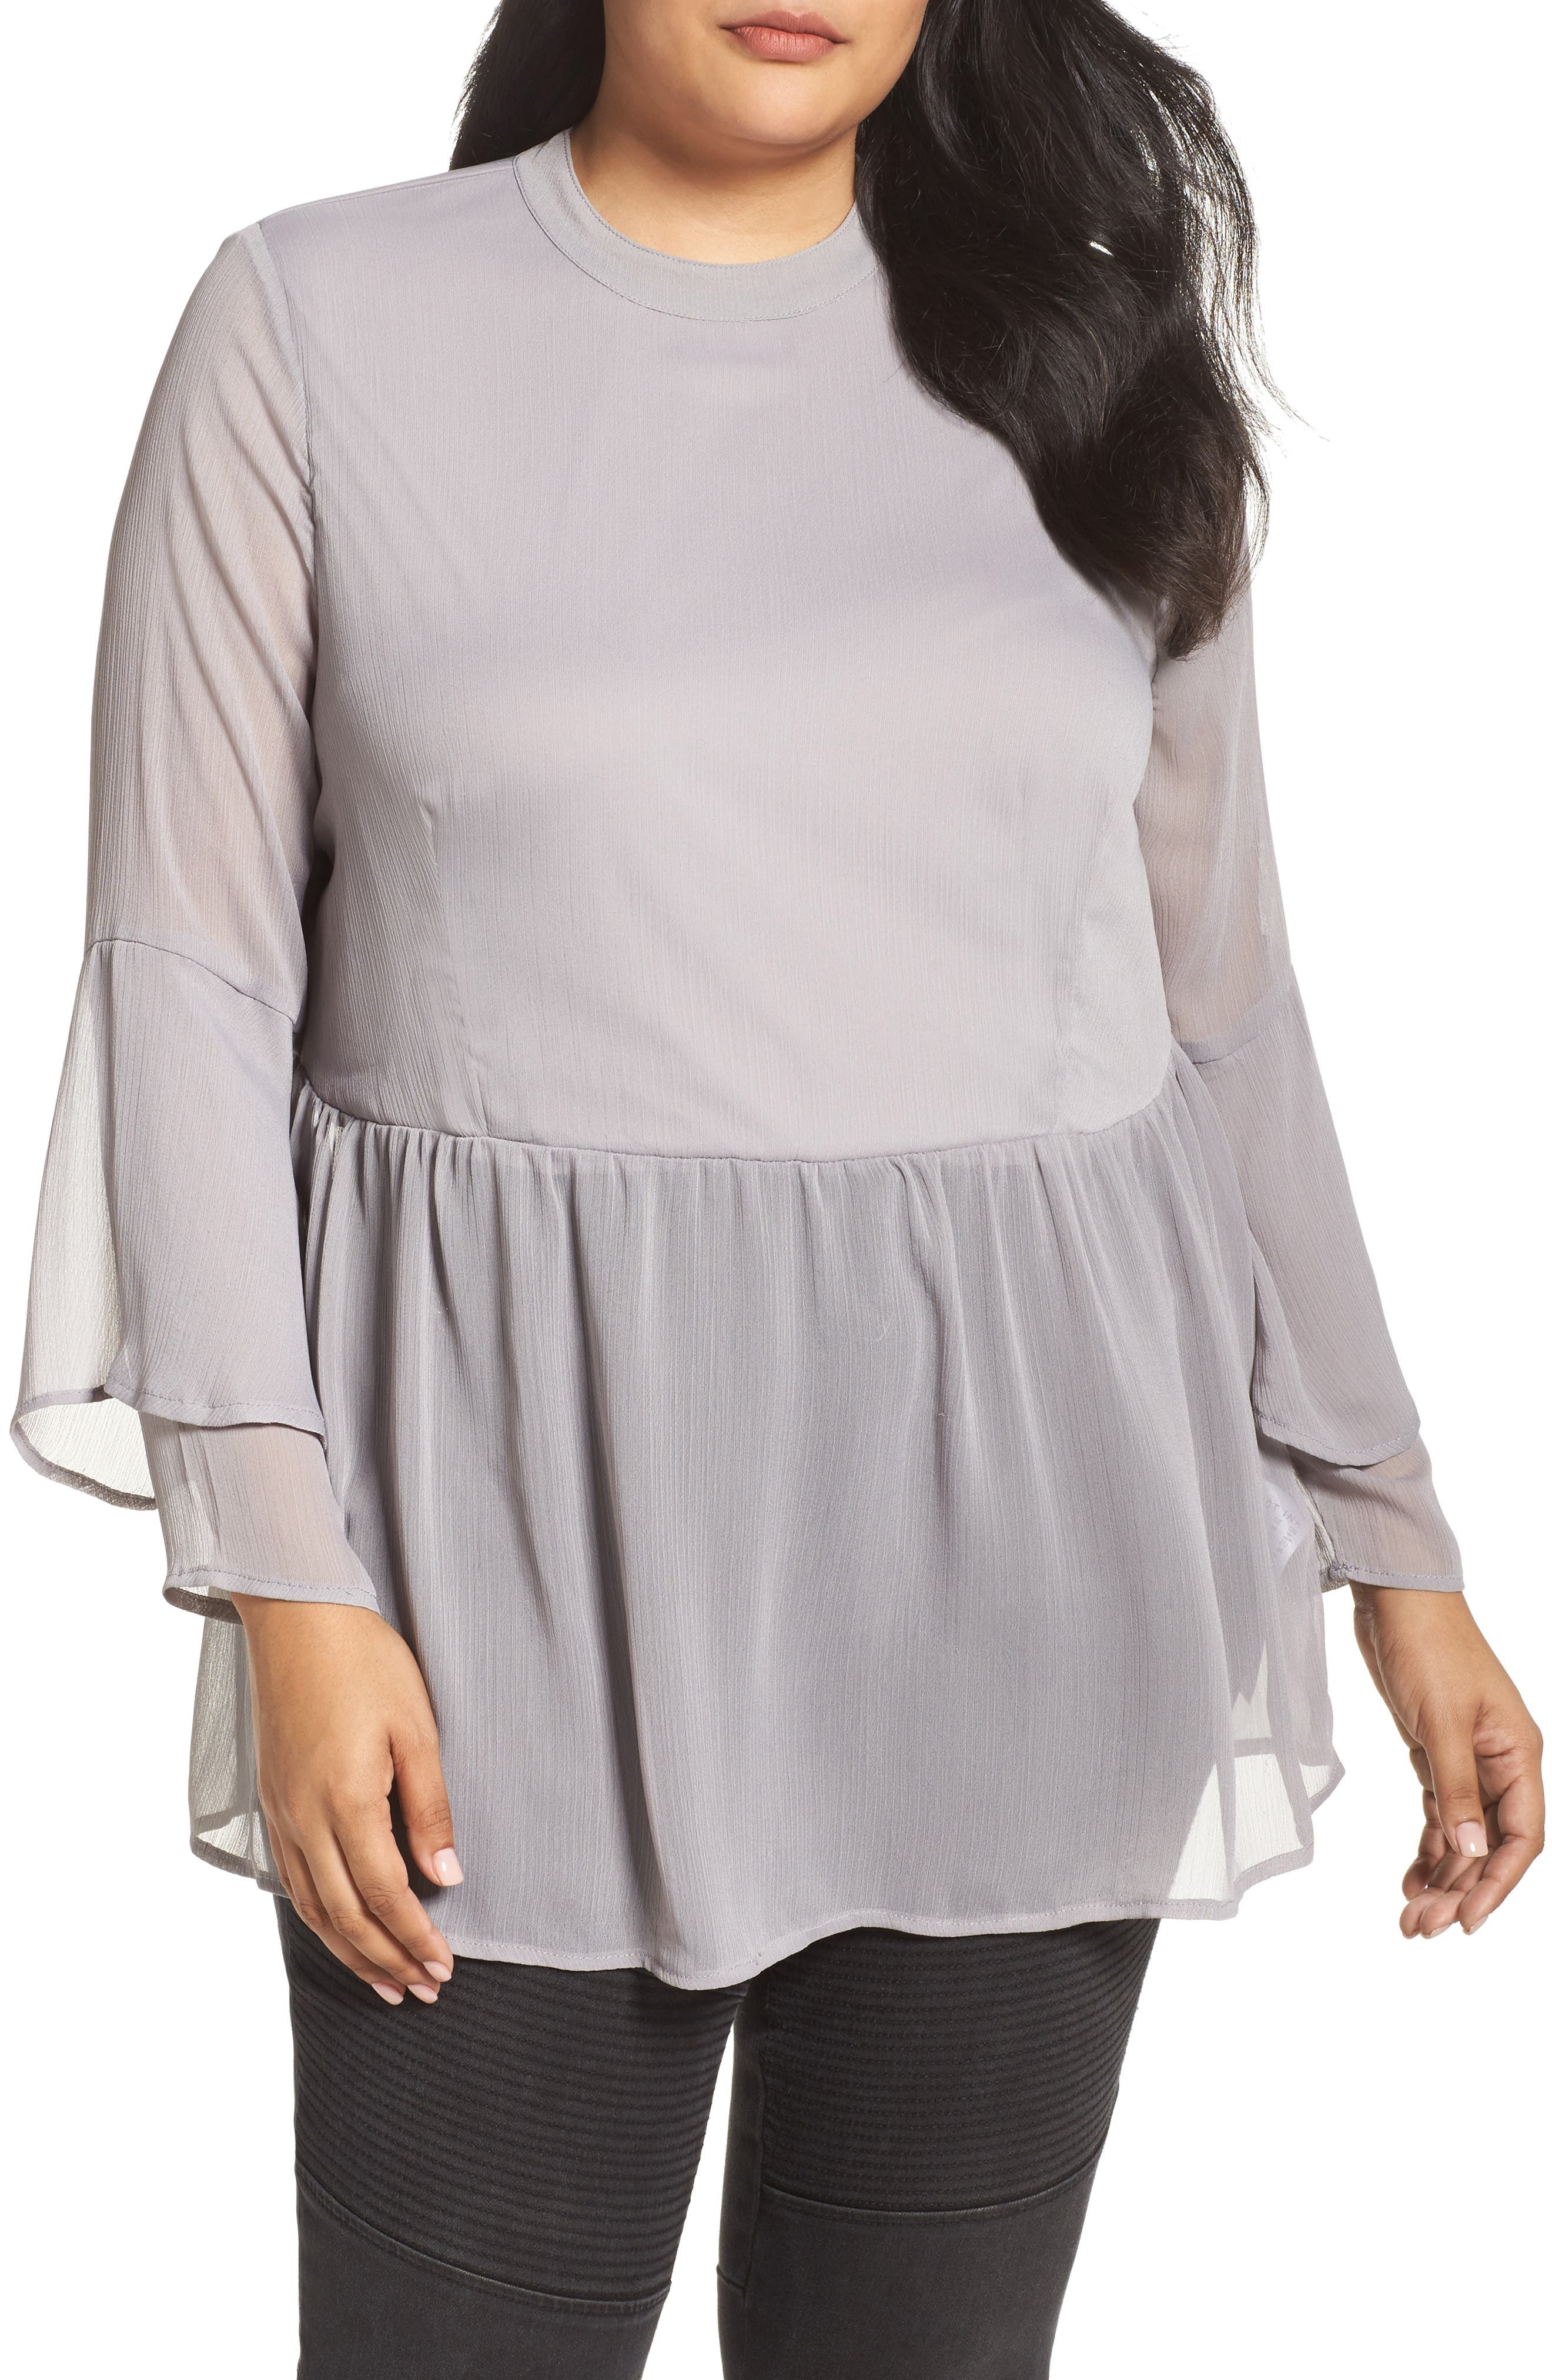 Main Image - LOST INK Crinkled Chiffon Top (Plus Size)